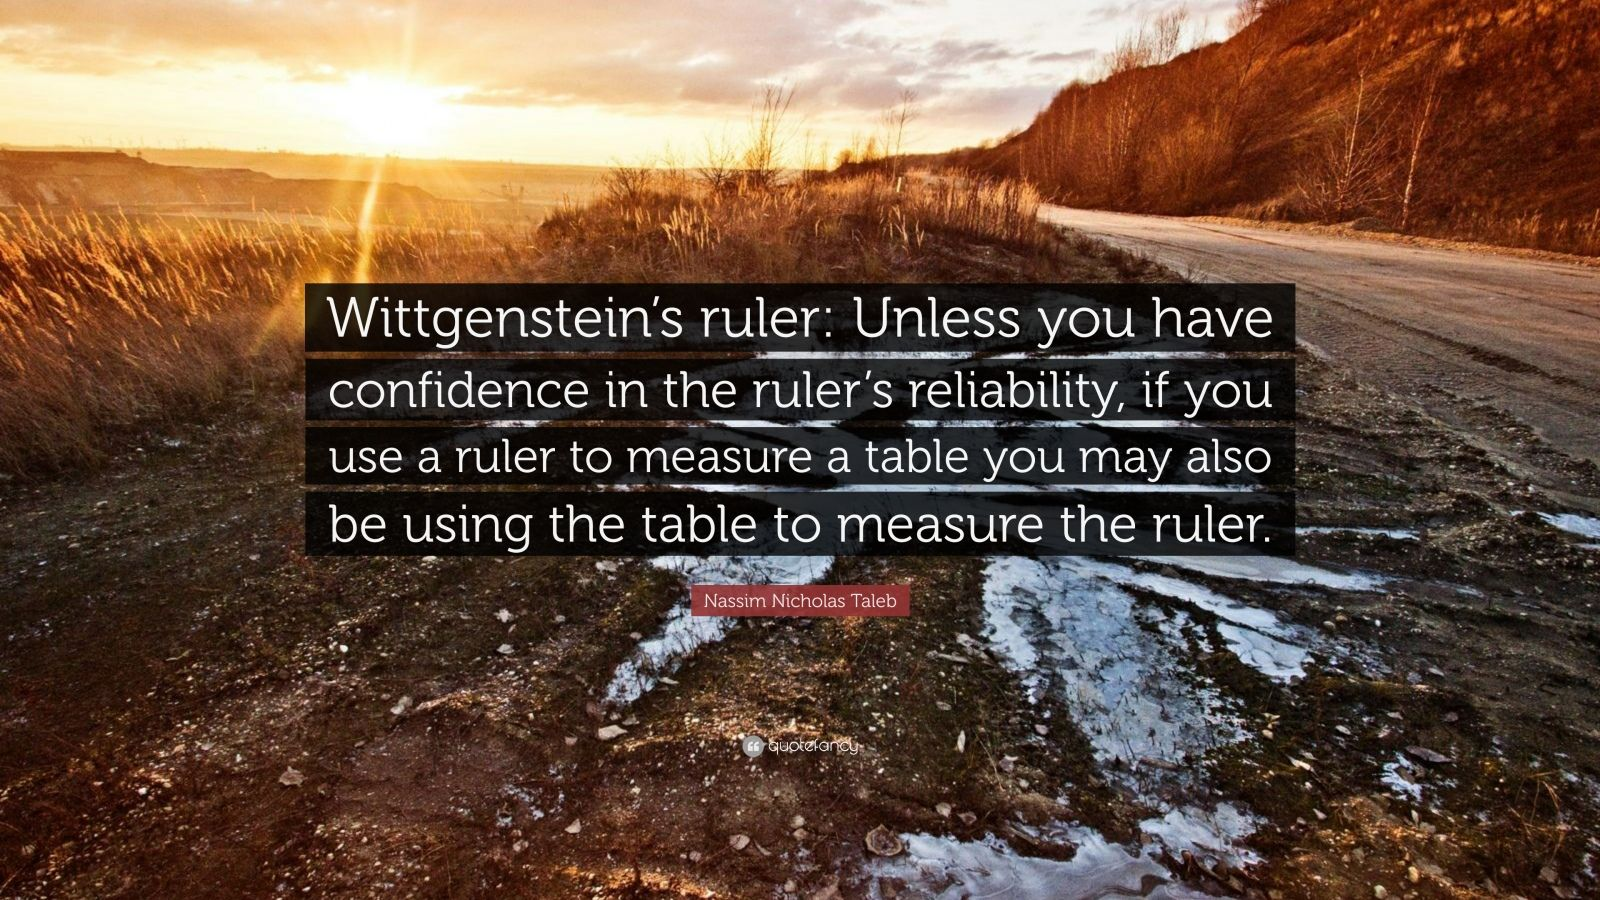 """Nassim Nicholas Taleb Quote: """"Wittgenstein's ruler: Unless you have confidence in the ruler's reliability, if you use a ruler to measure a table you may also be using the table to measure the ruler."""""""